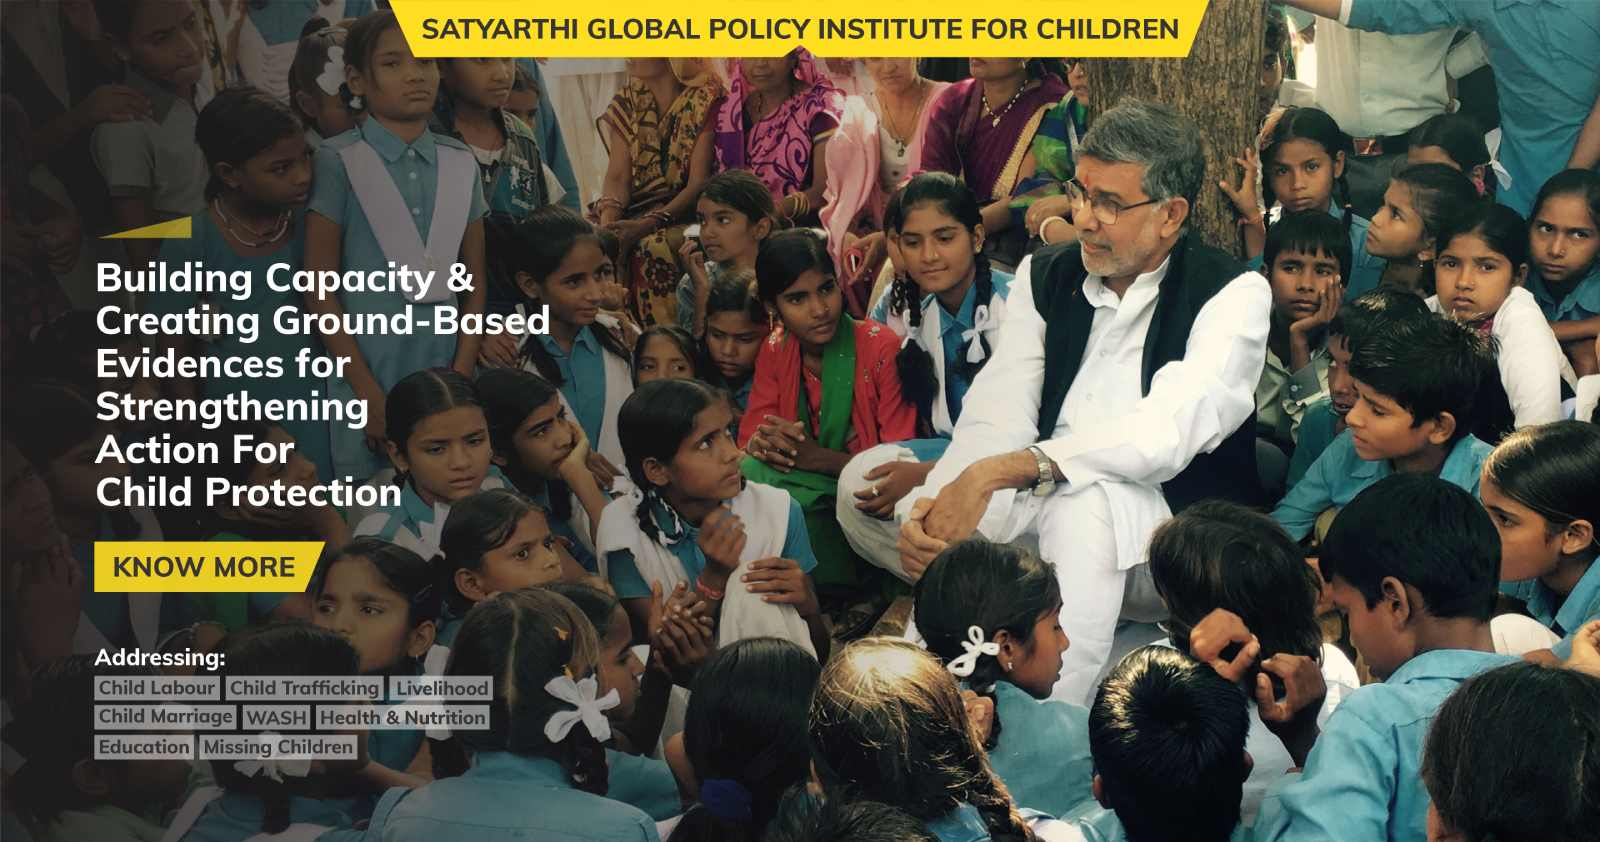 Satyarthi Global Policy institute for children protection